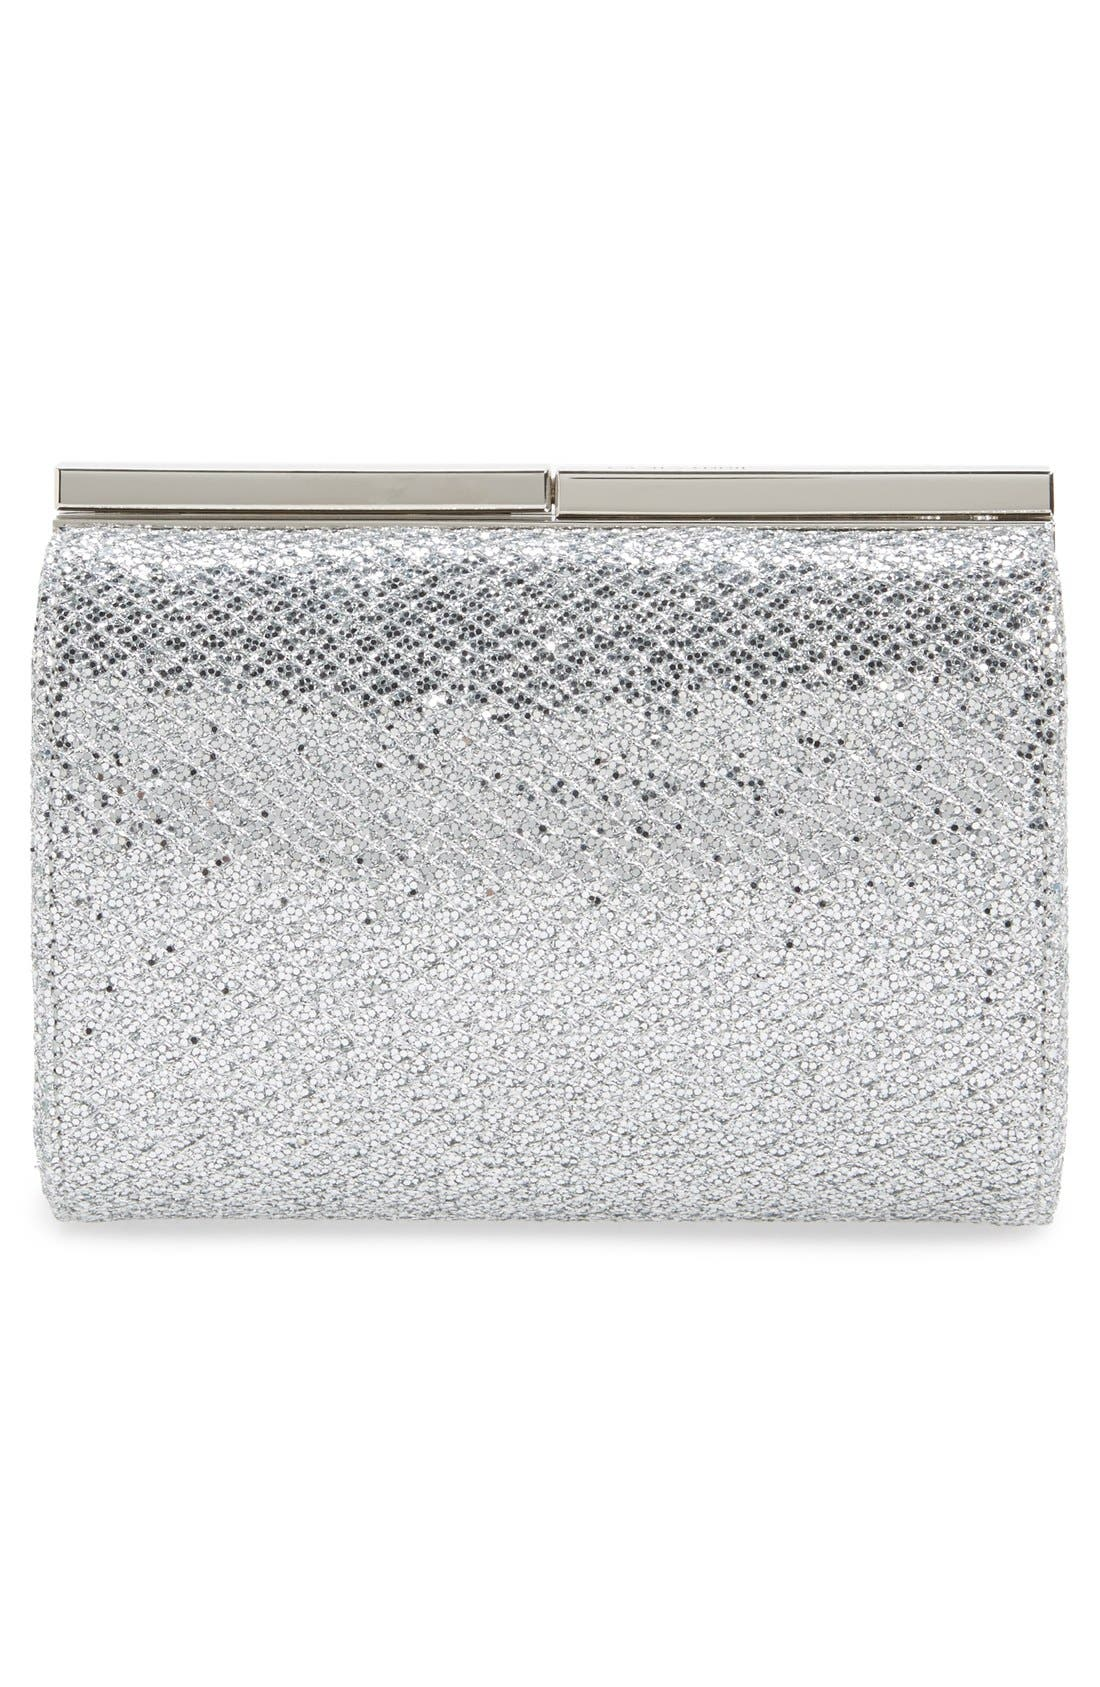 'Cate' Glitter Box Clutch,                             Alternate thumbnail 3, color,                             040